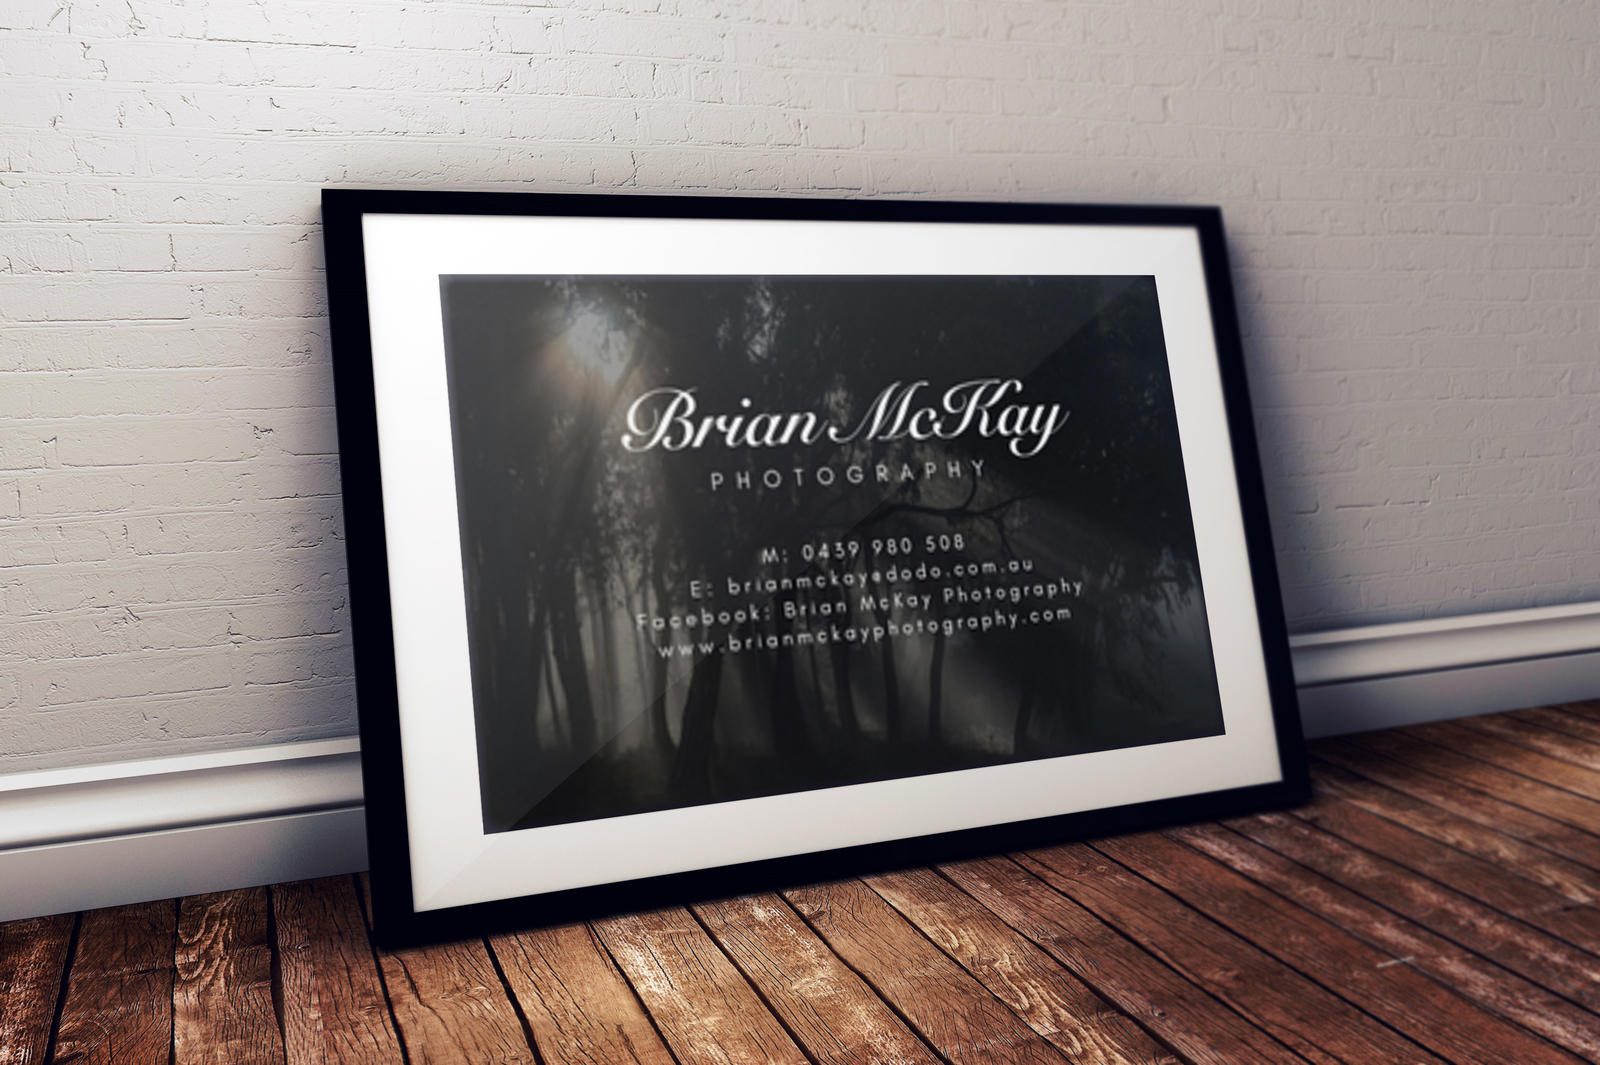 brian-mckay-photography-business-card.jpg